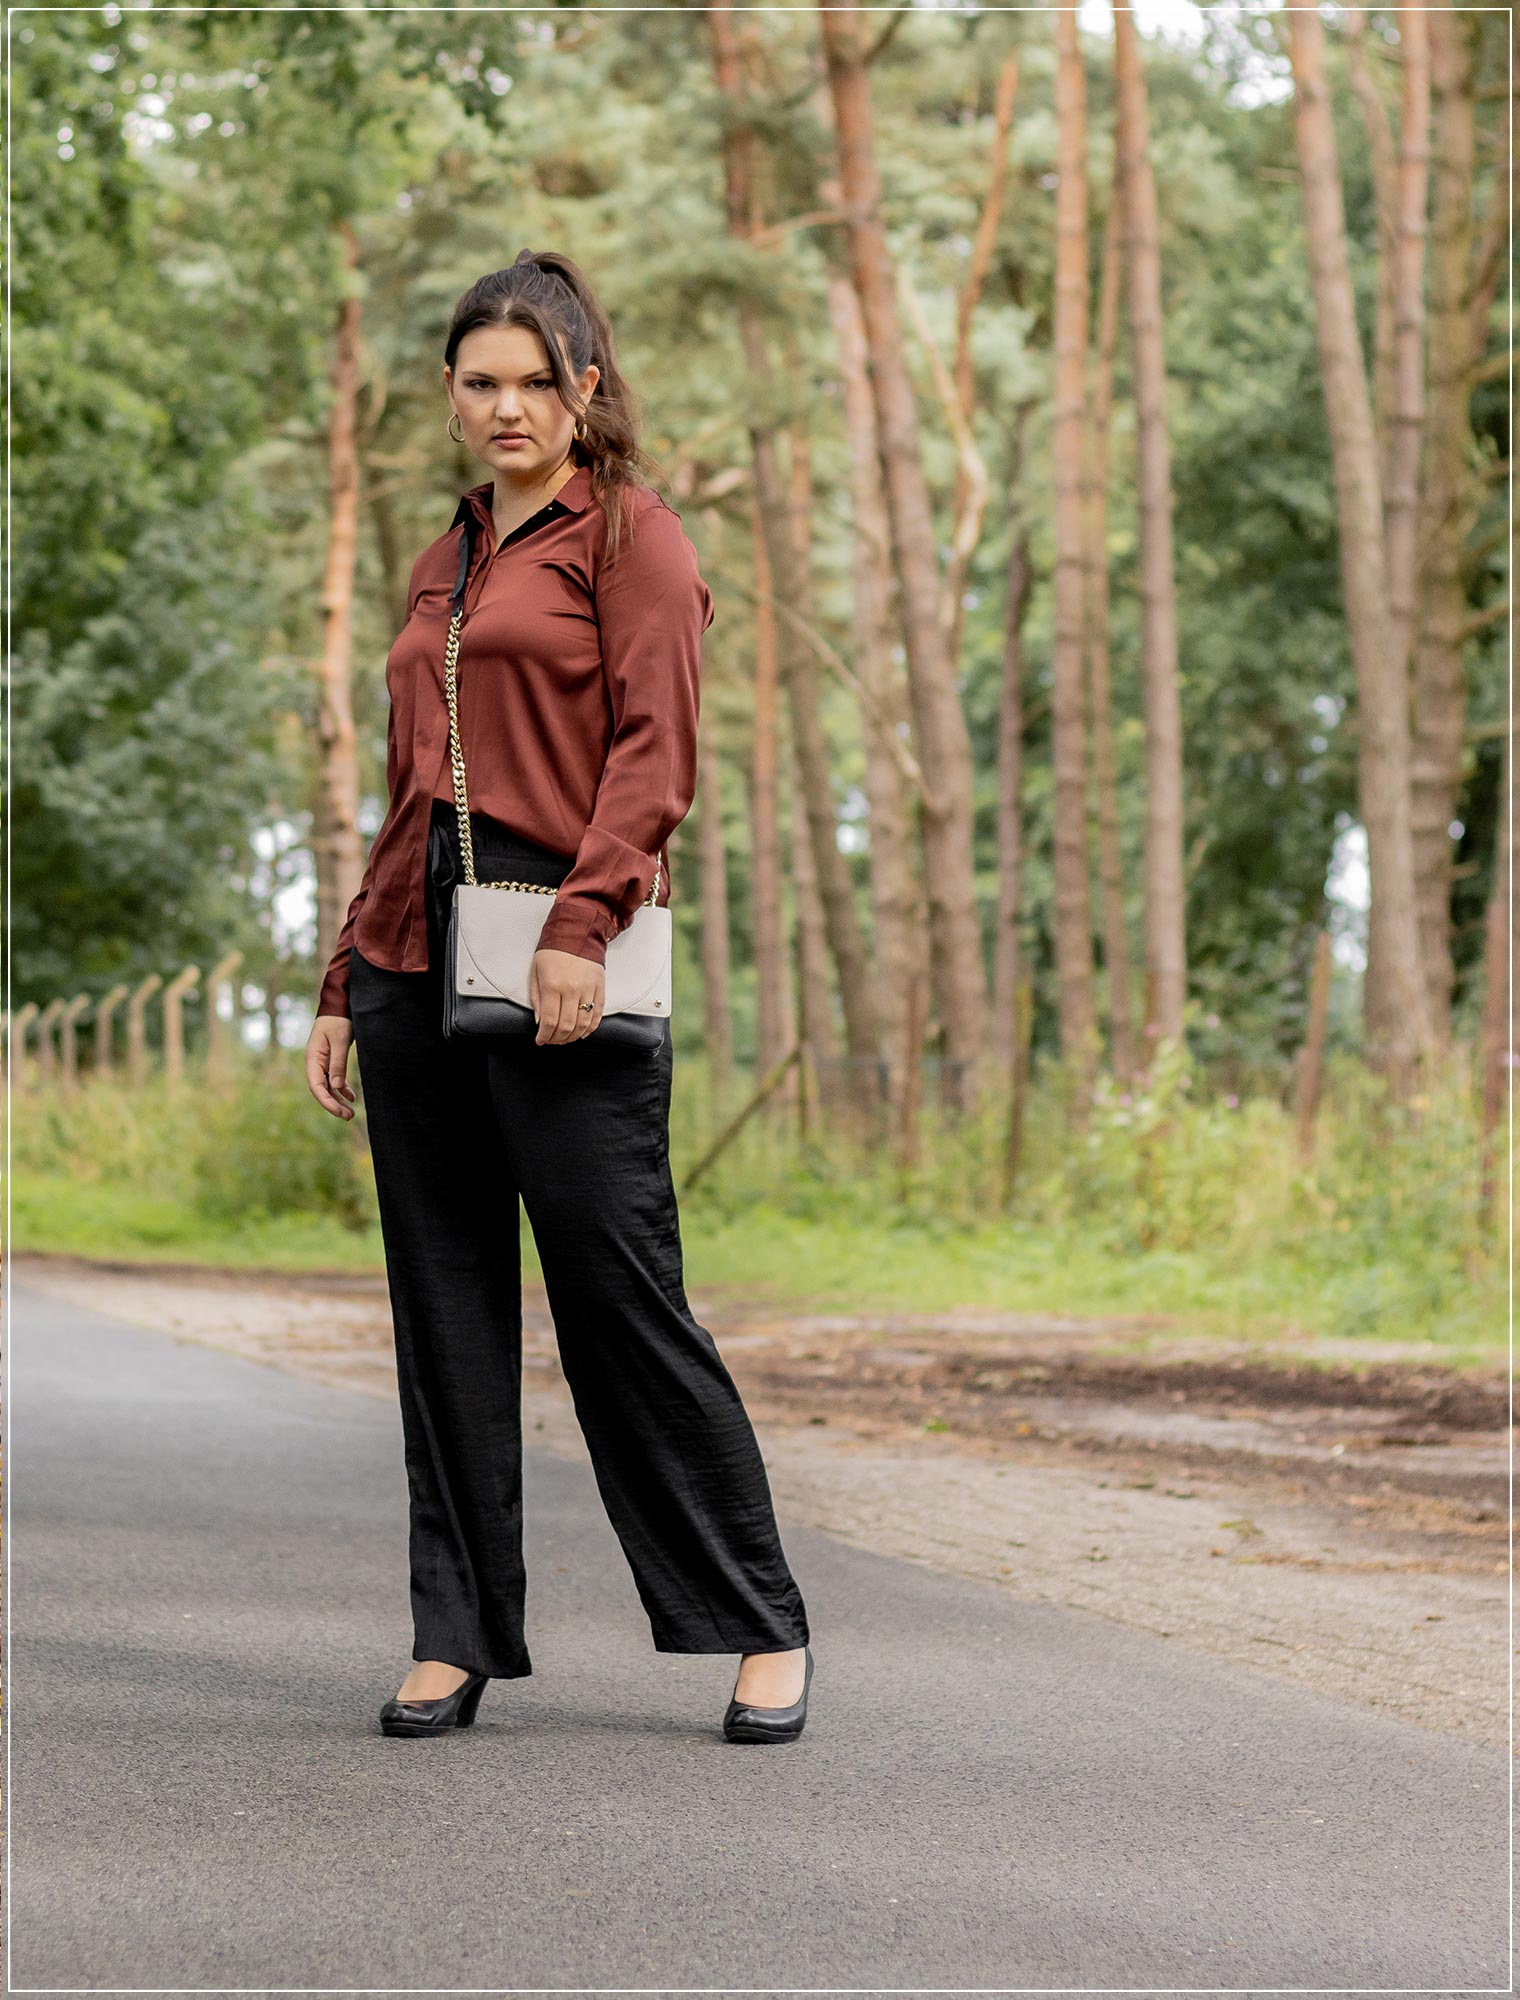 Satin-Bluse als Herbst Must Have 2021